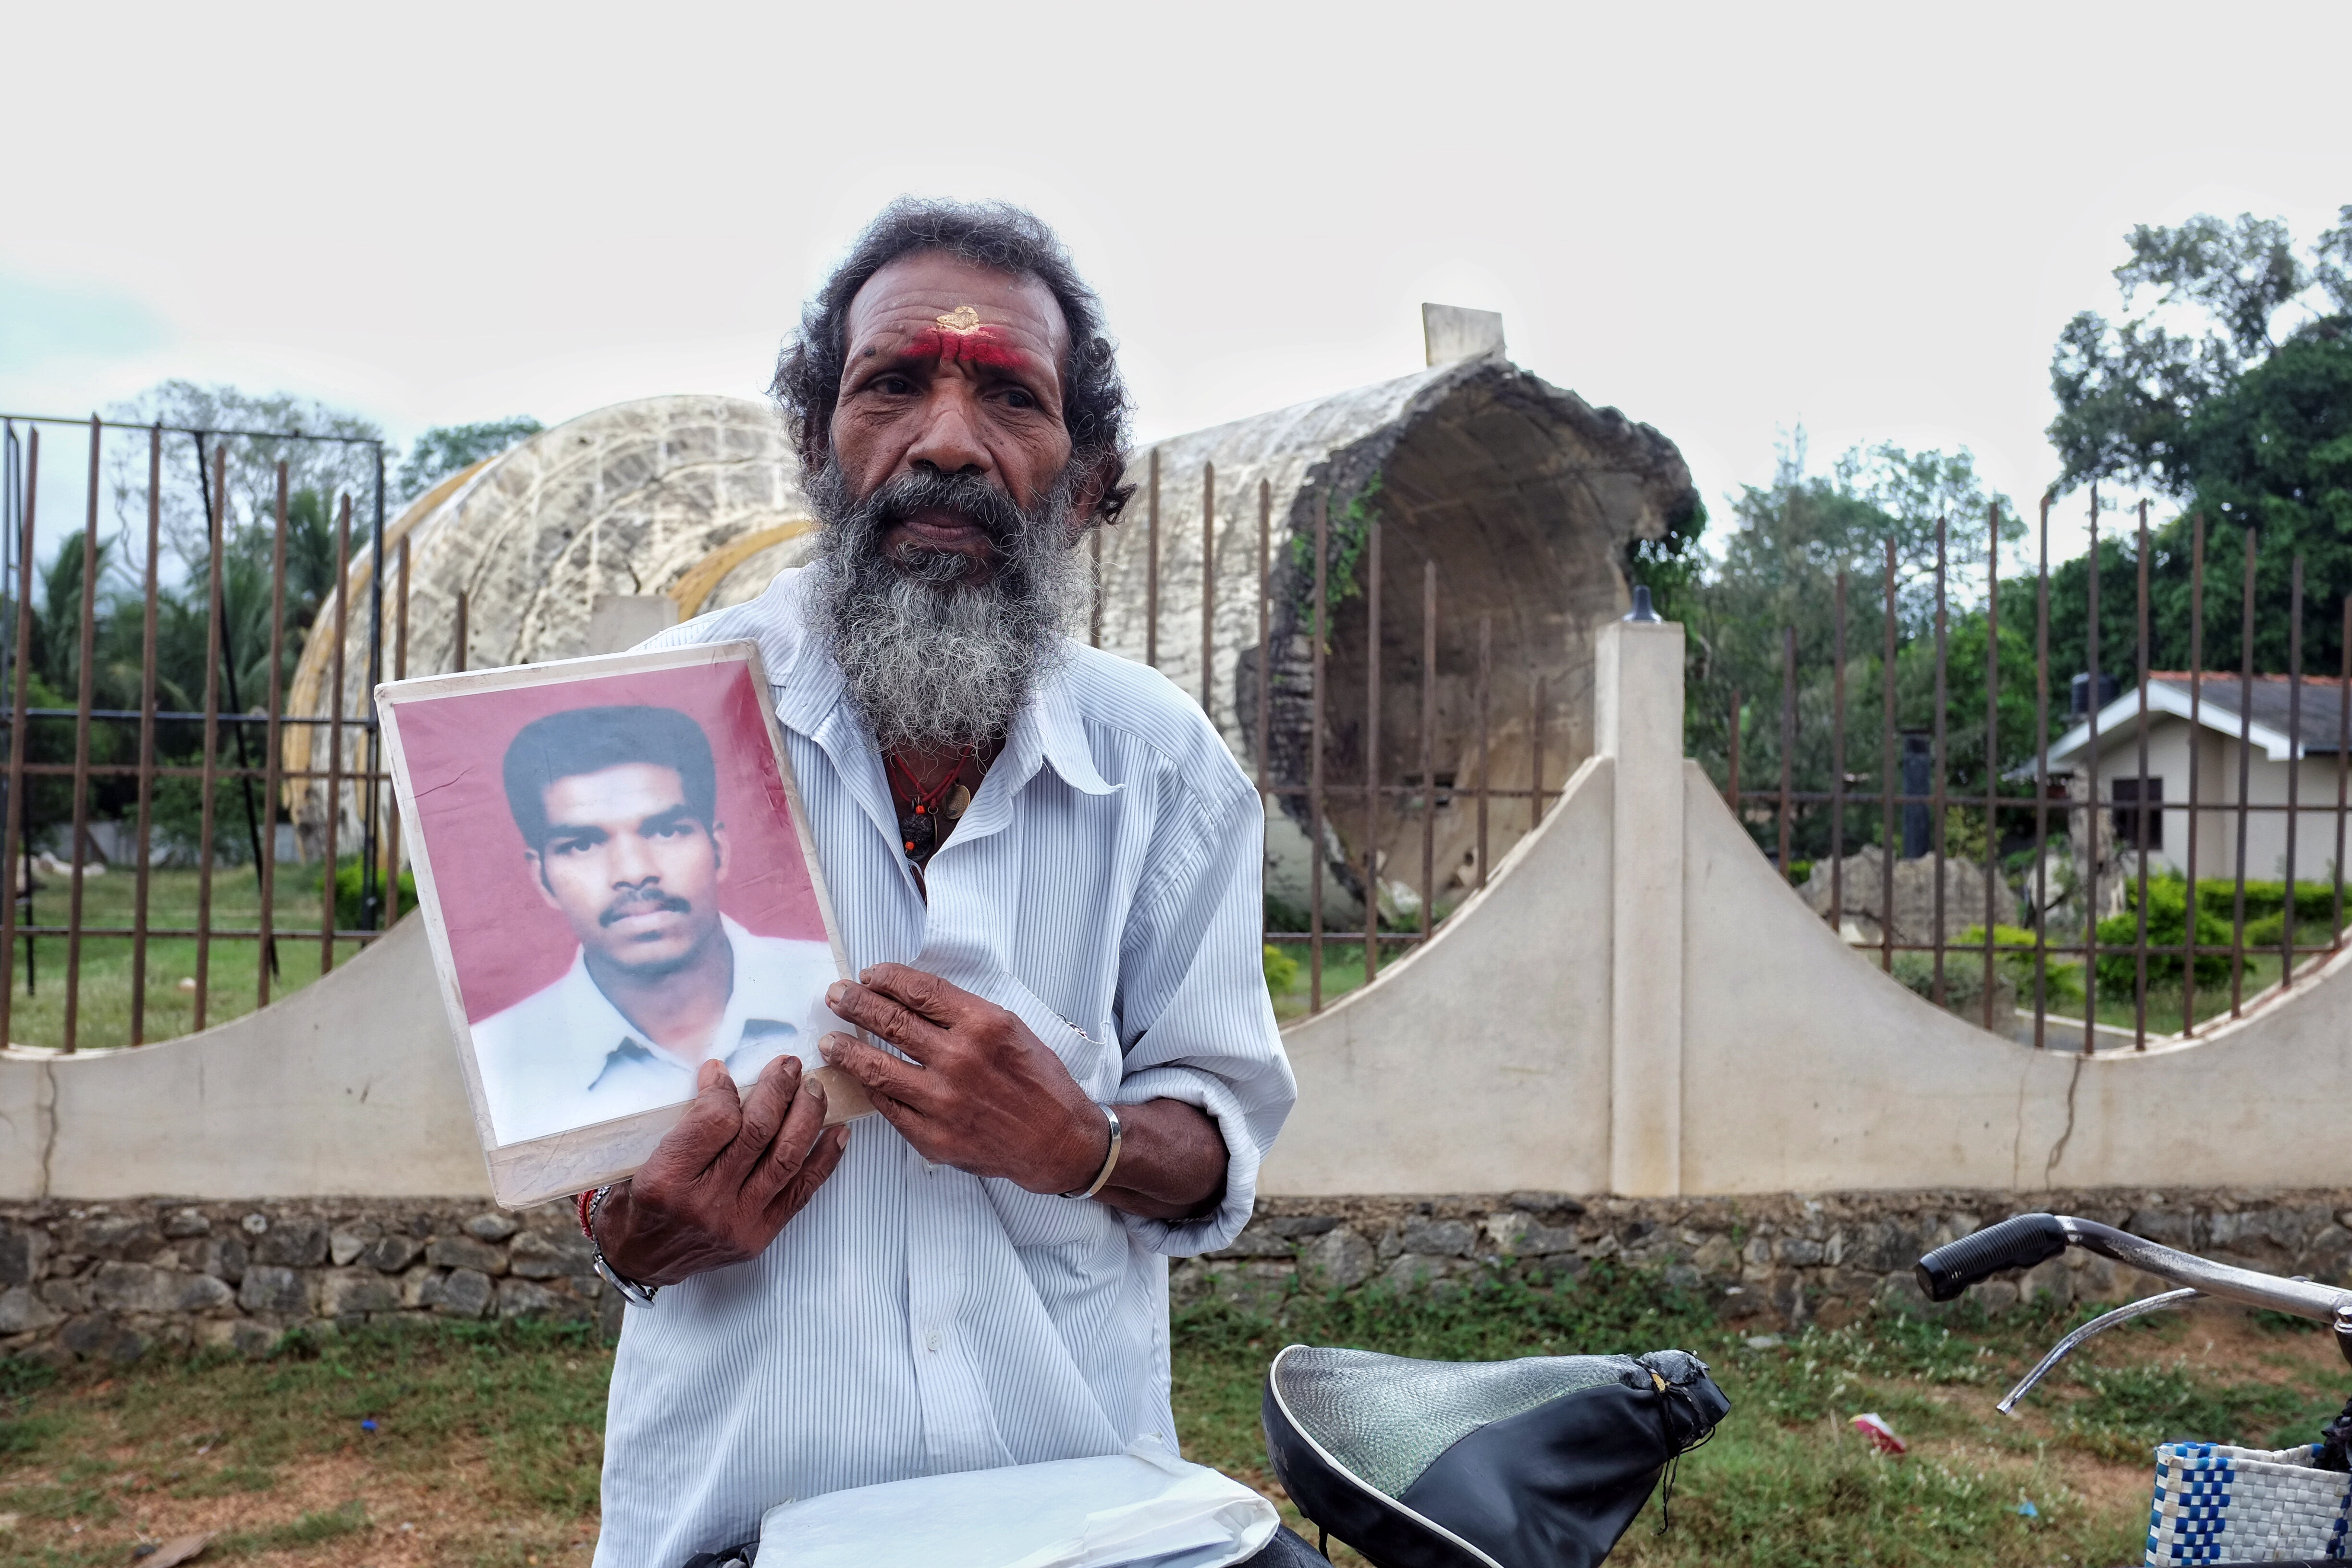 Muddan Thavendran shows a portrait of his son, who has been missing since 2008.